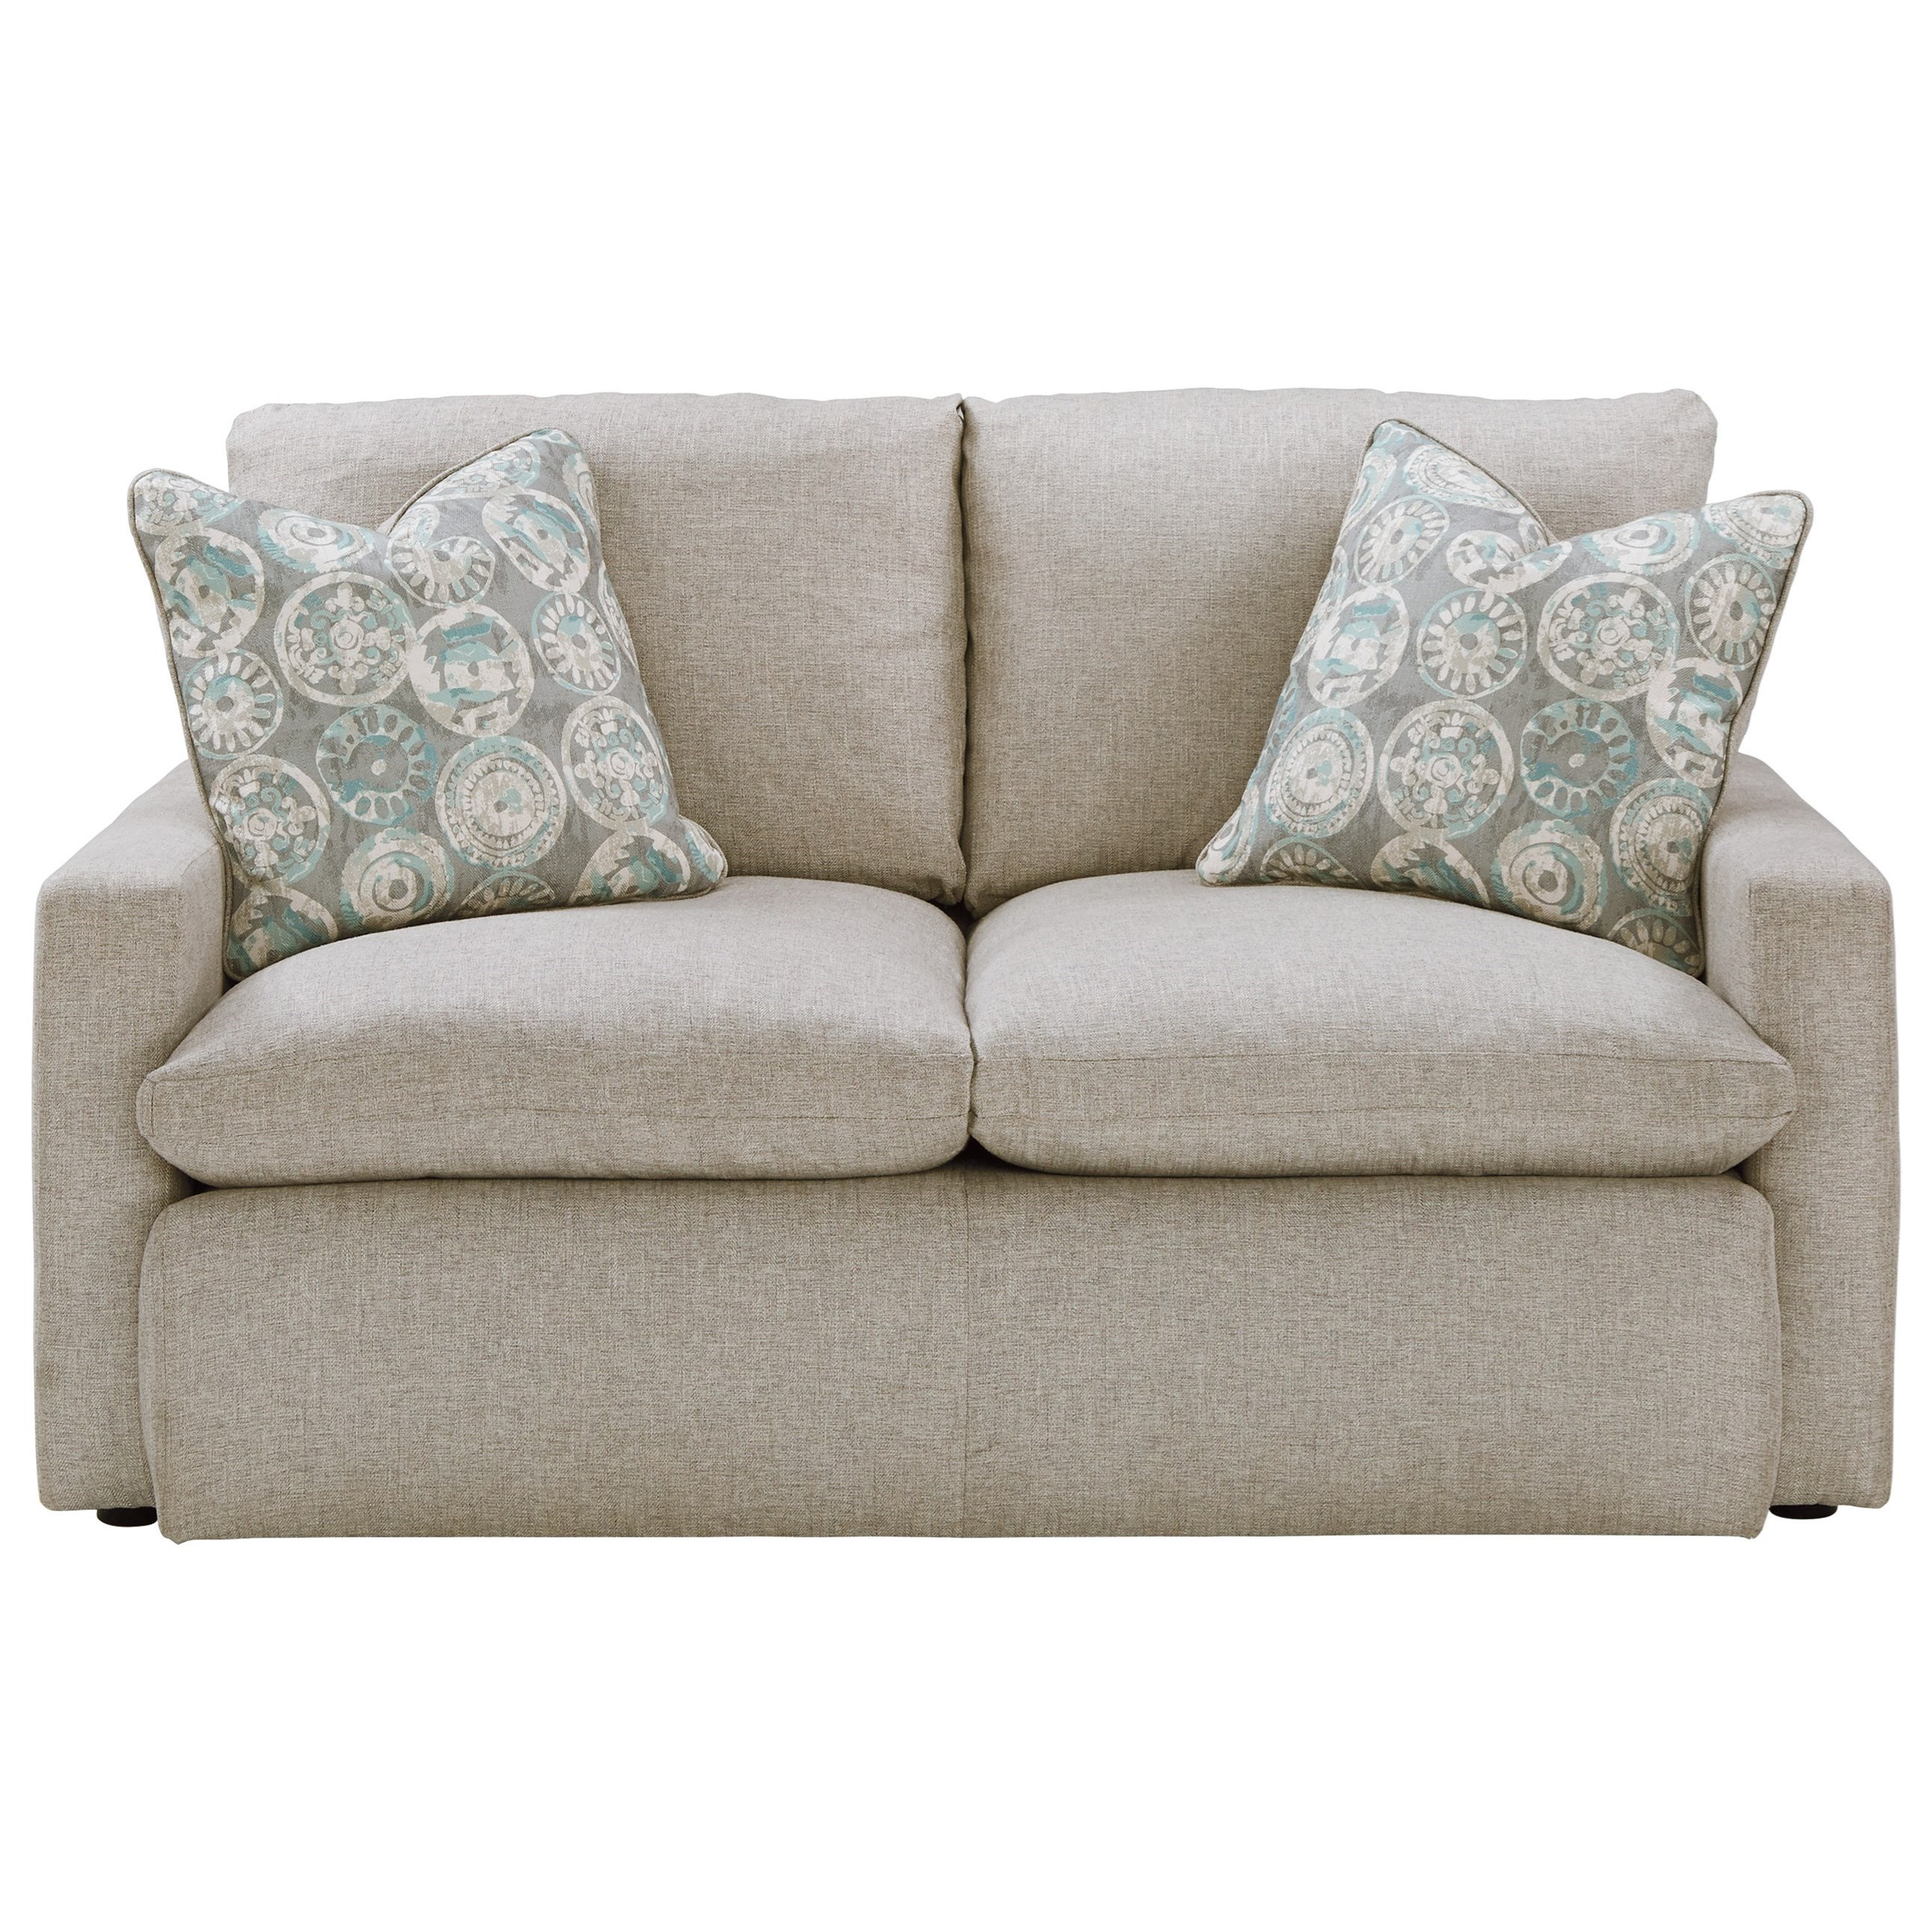 Benchcraft Melilla Loveseat - Item Number: 2830235